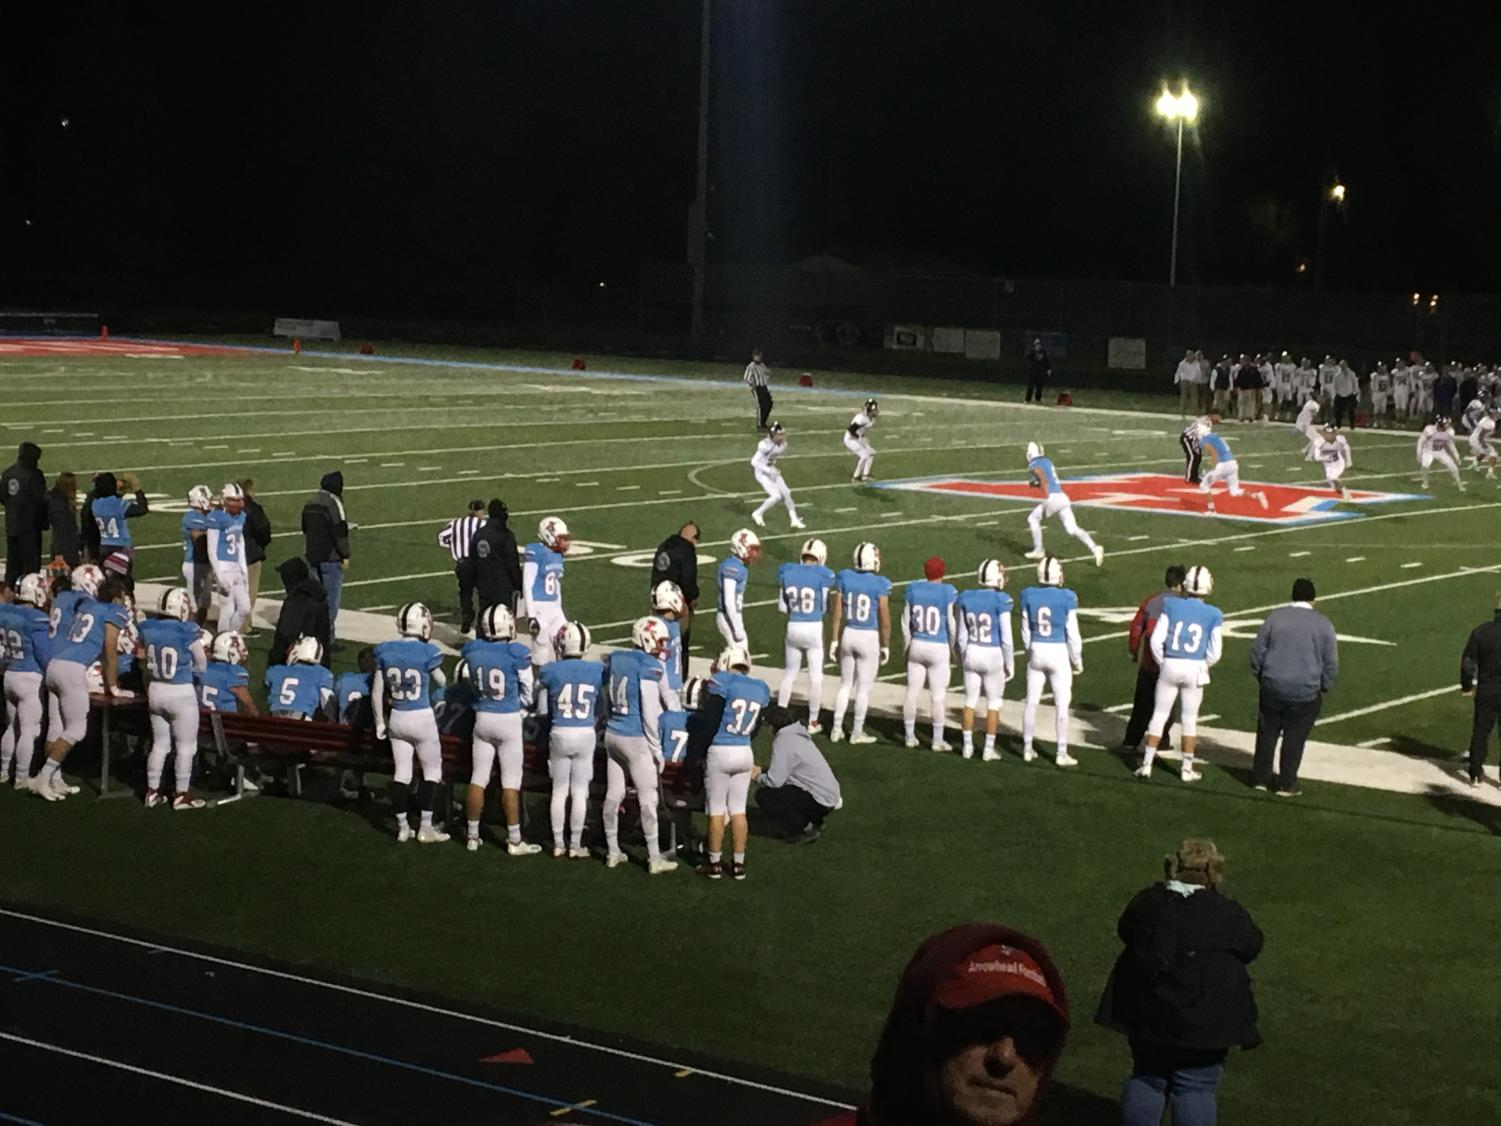 Arrowhead Football game 10/12 against Waukesha North